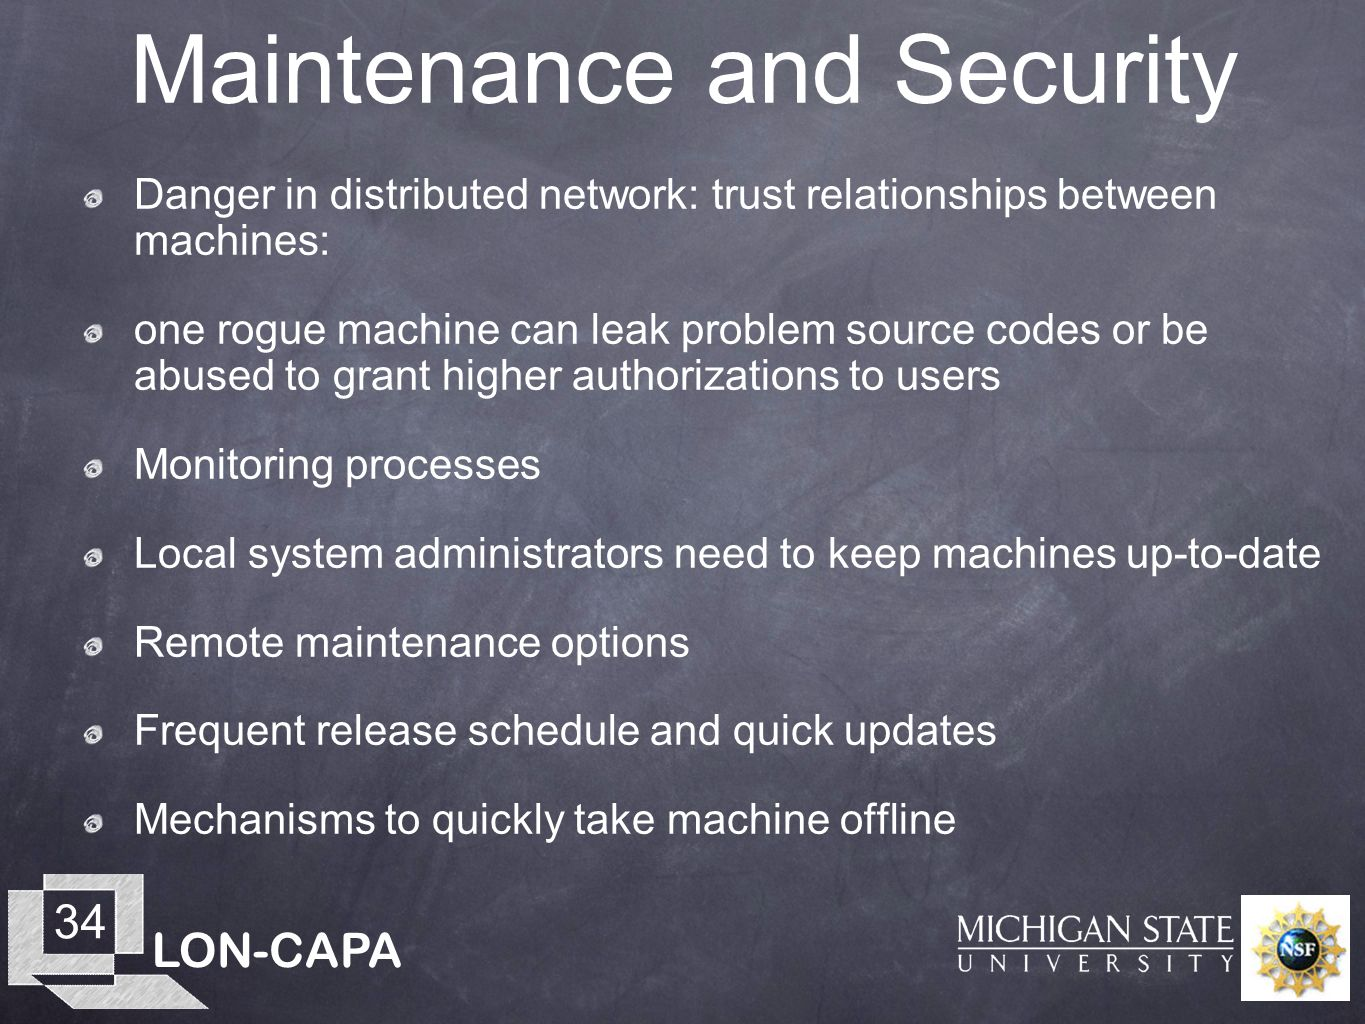 LON-CAPA 34 Maintenance and Security Danger in distributed network: trust relationships between machines: one rogue machine can leak problem source codes or be abused to grant higher authorizations to users Monitoring processes Local system administrators need to keep machines up-to-date Remote maintenance options Frequent release schedule and quick updates Mechanisms to quickly take machine offline